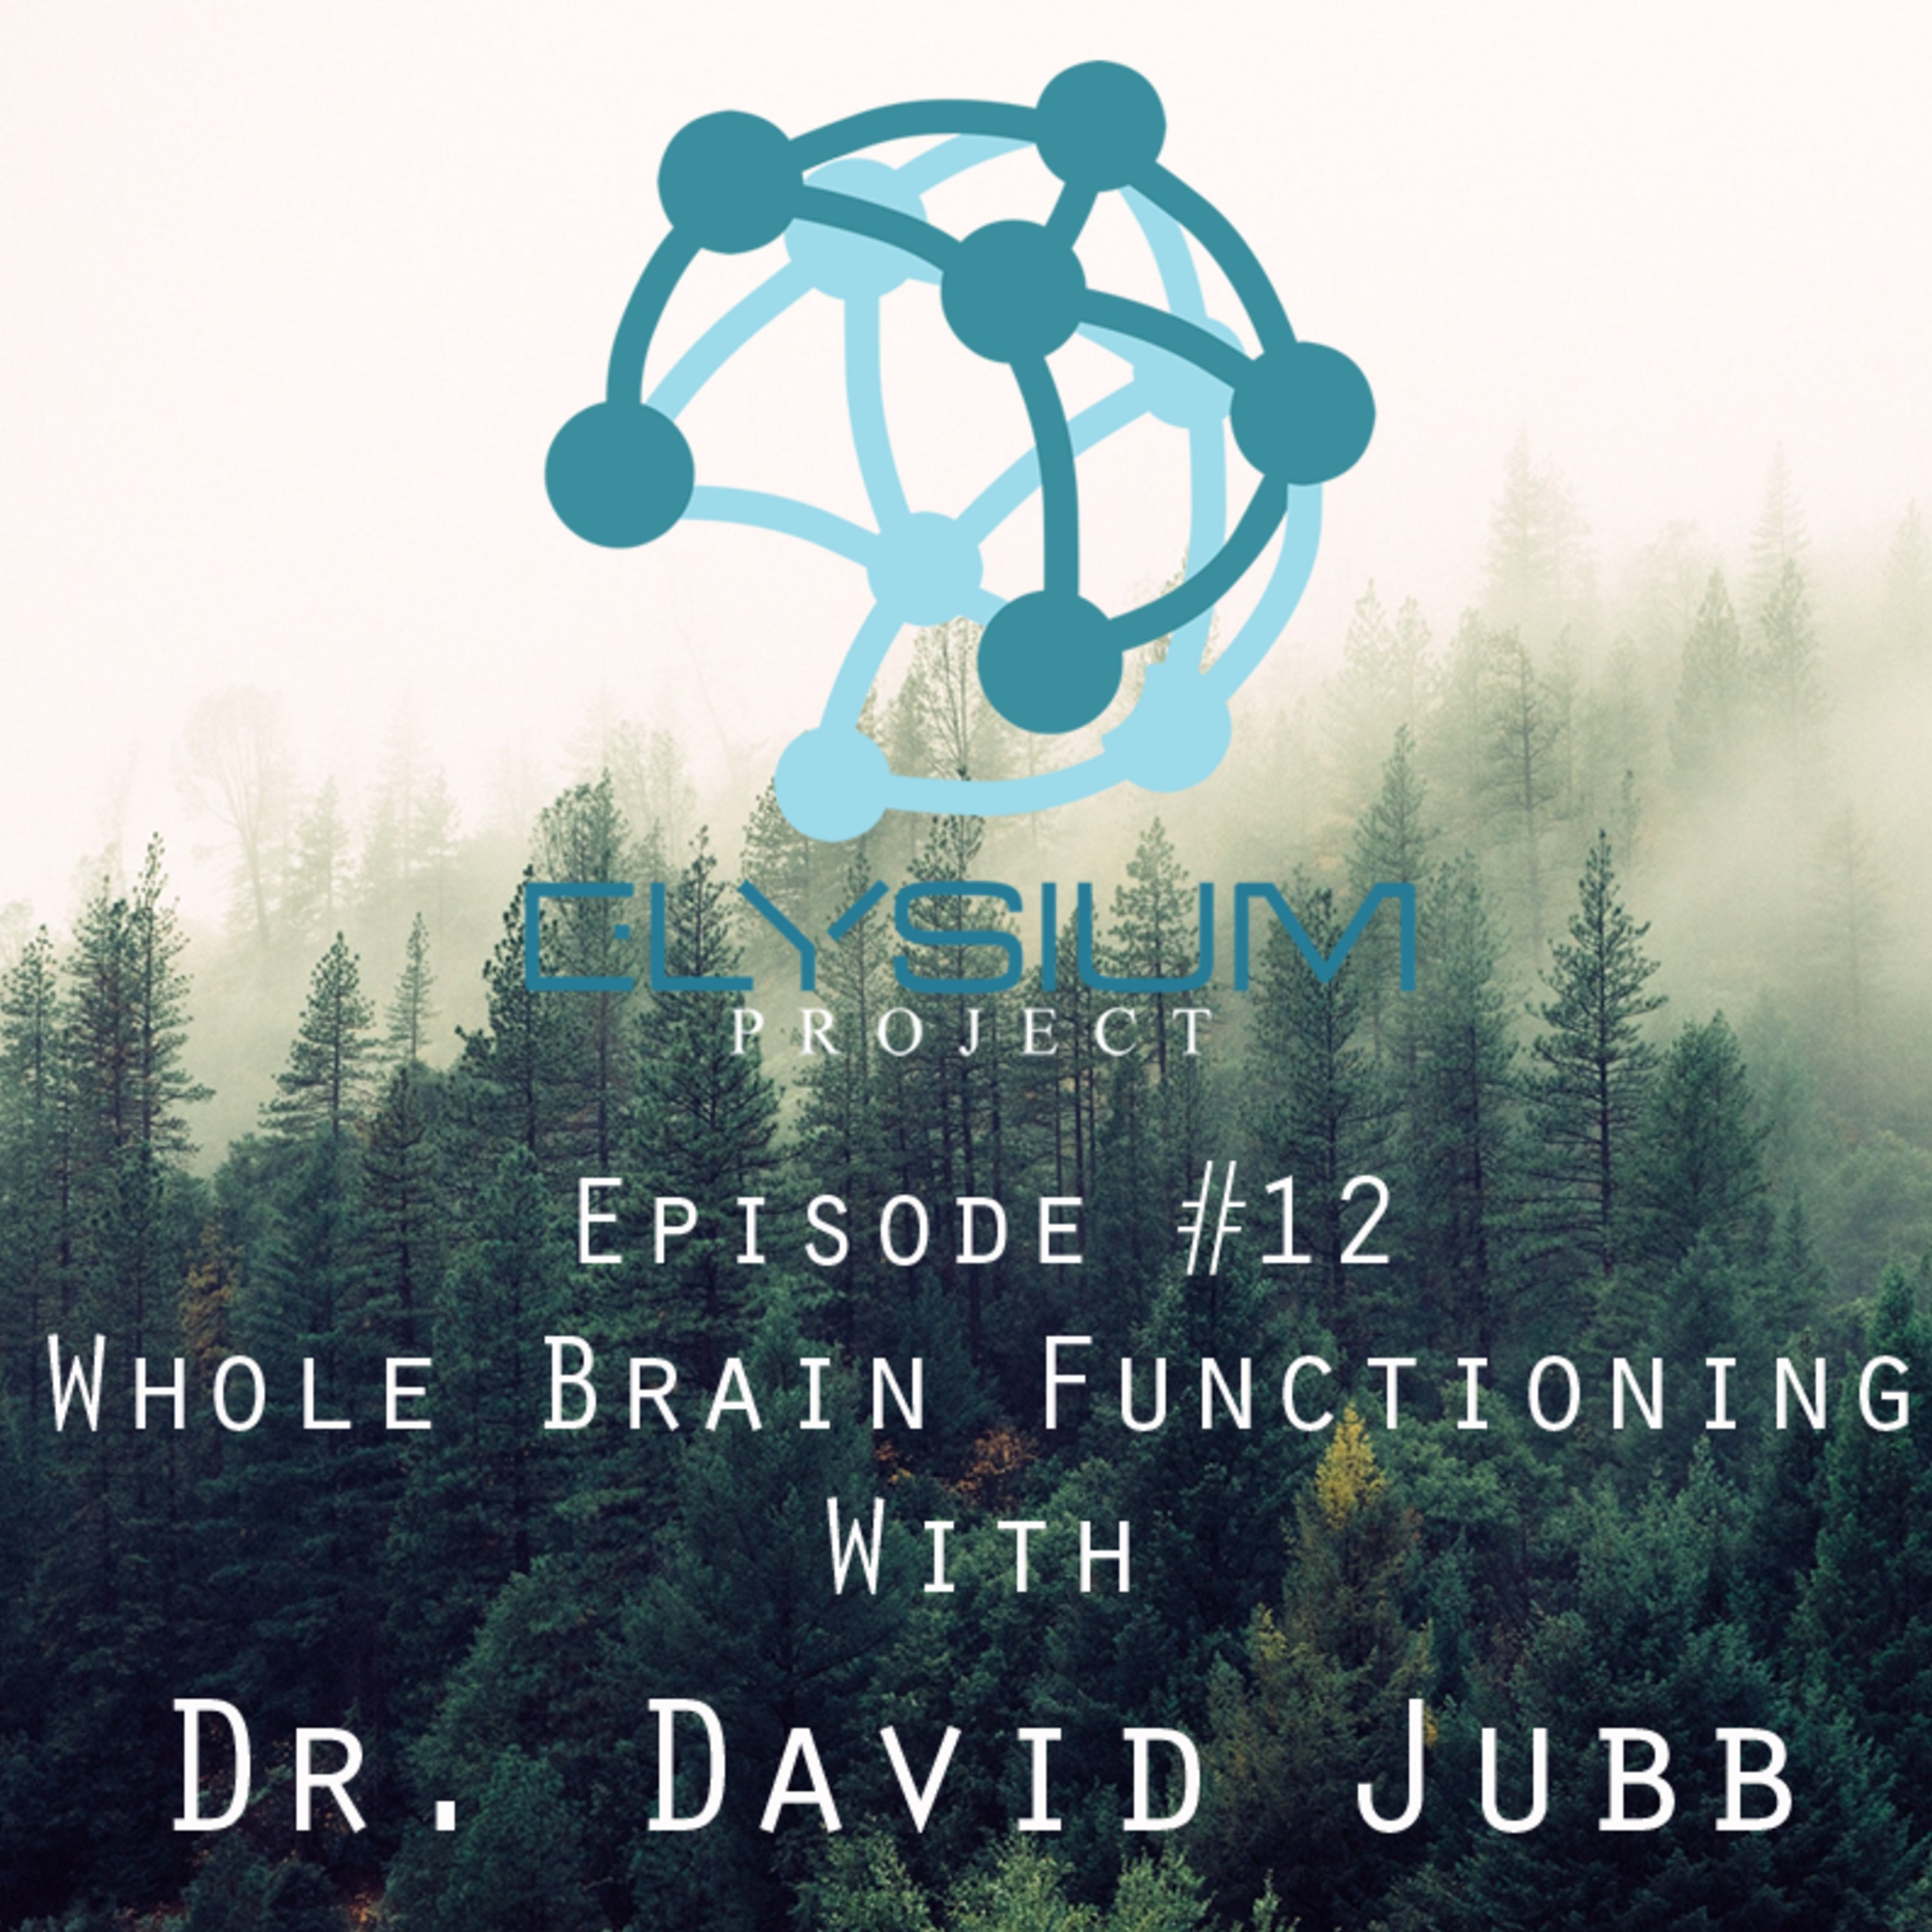 Episode 12: Whole Brain Functioning with Dr. David Jubb